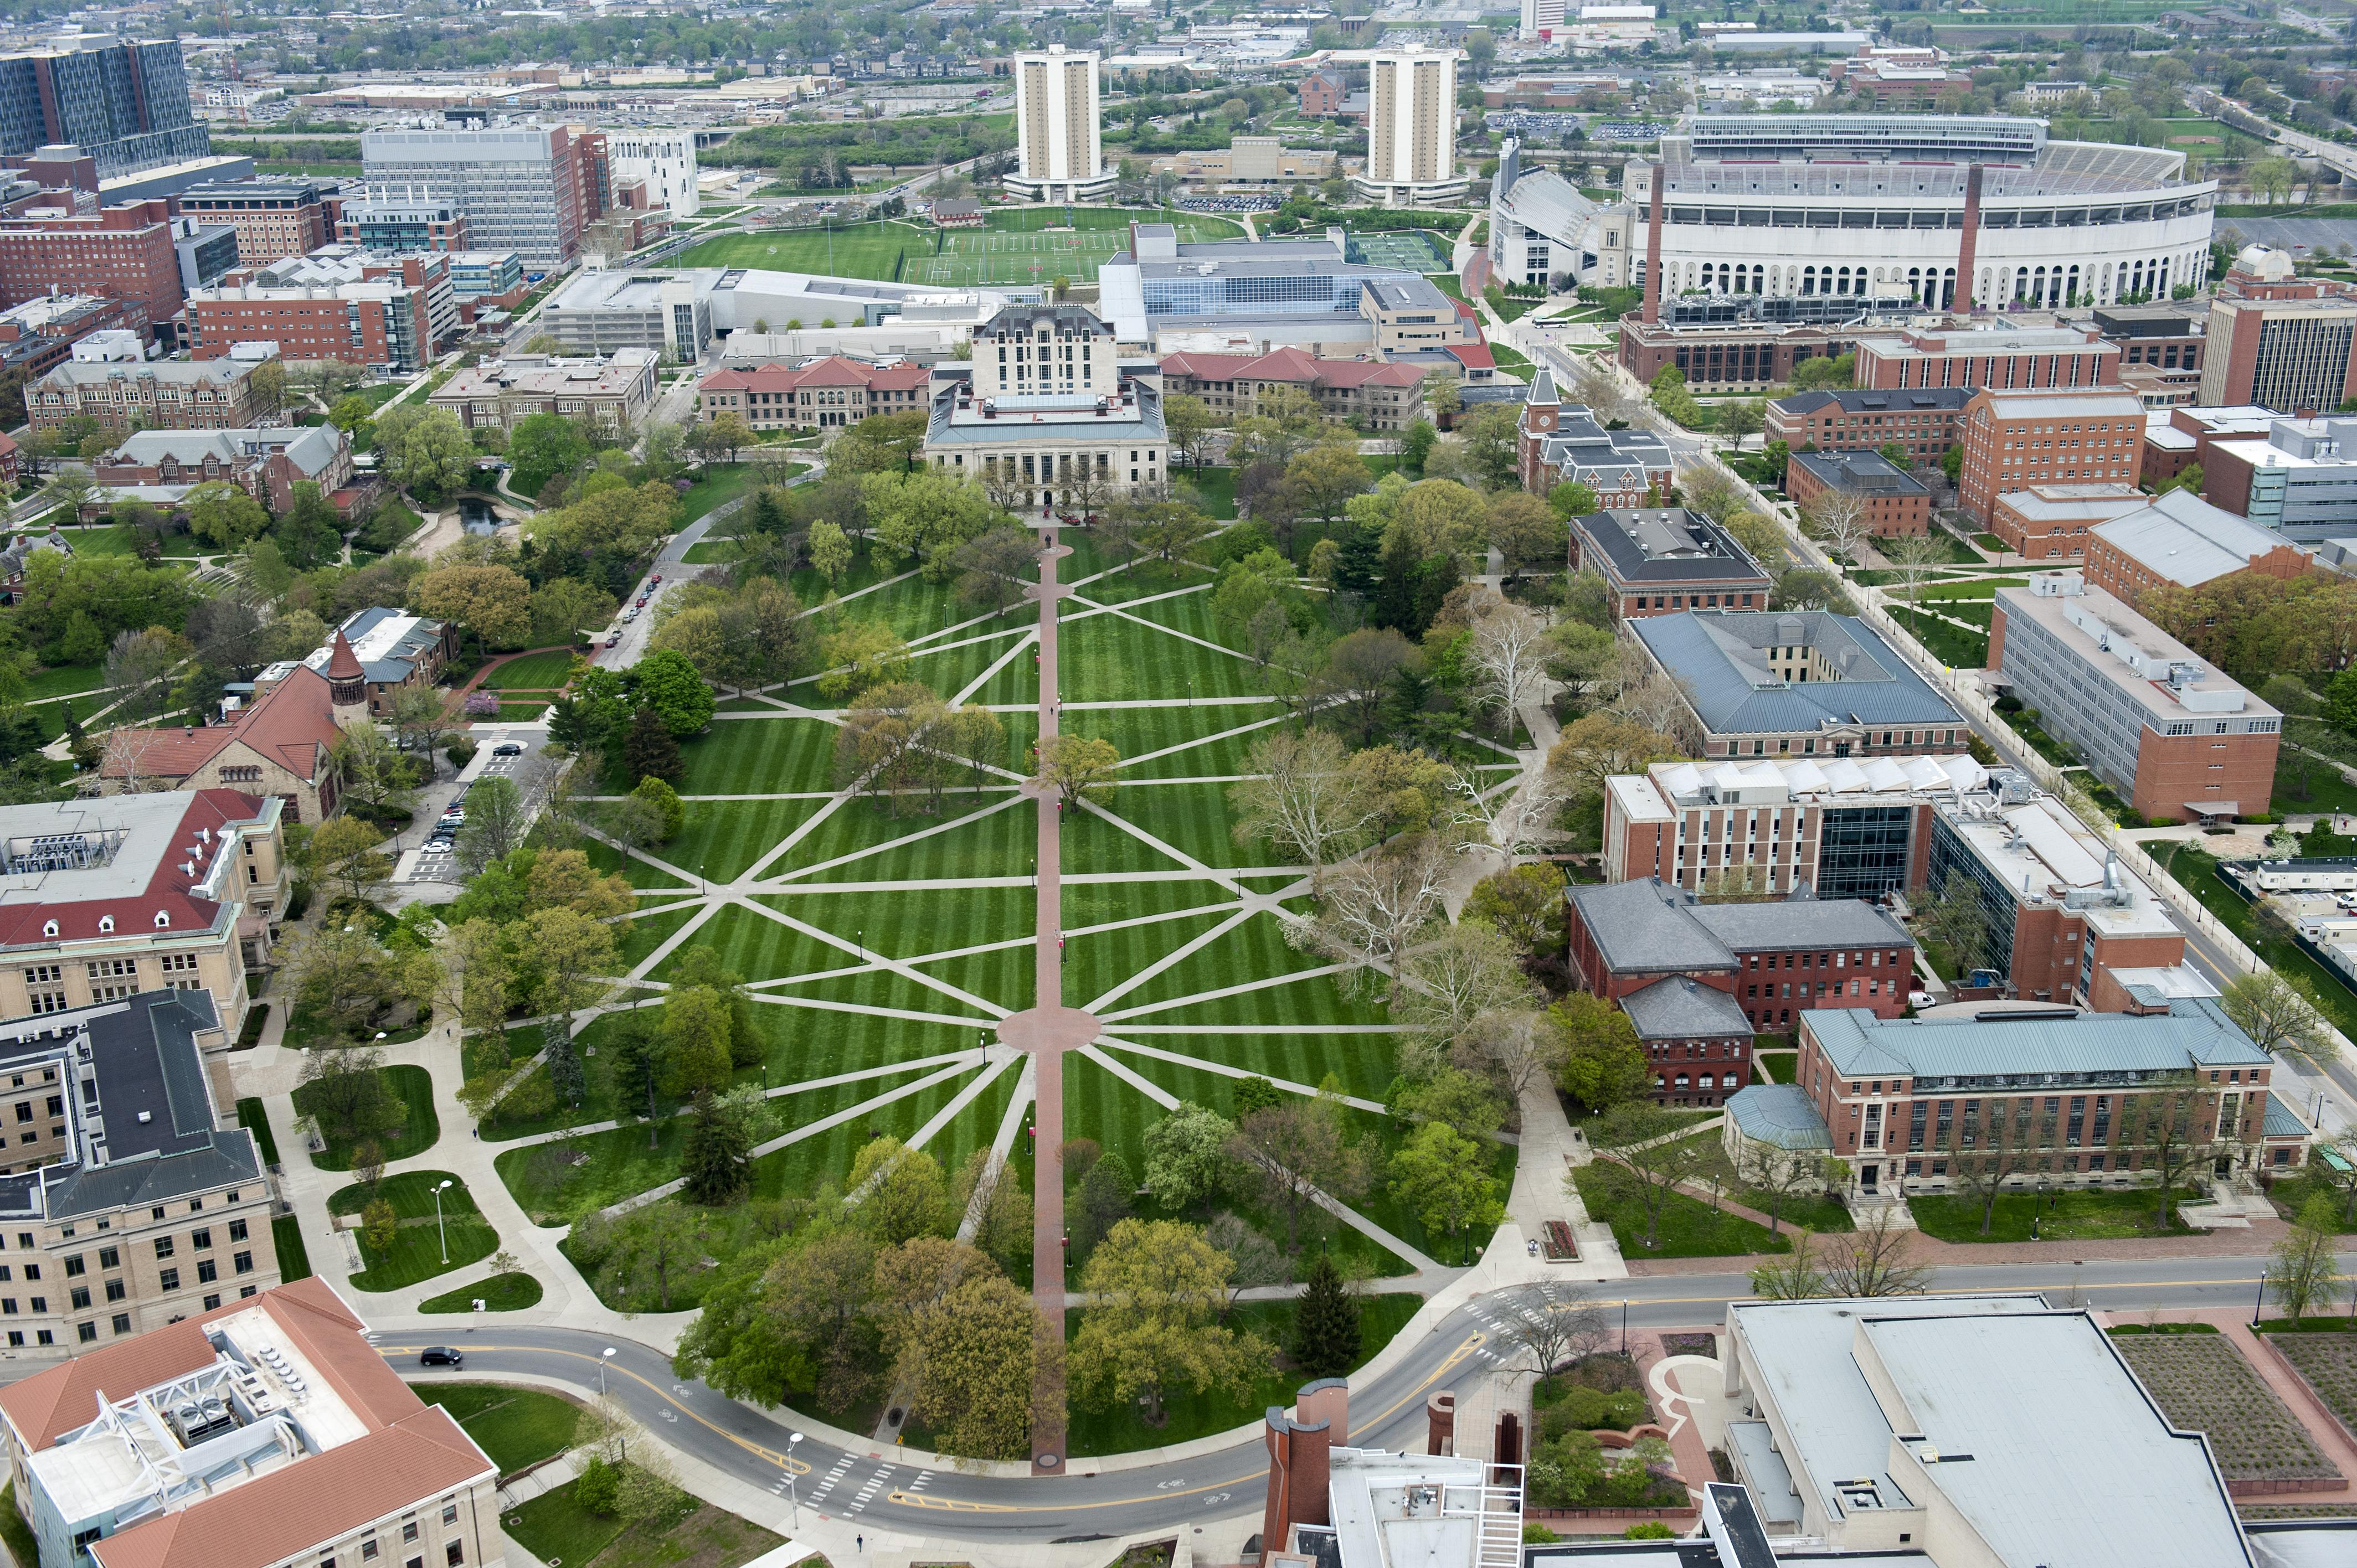 Aerial view of The Ohio State University Oval